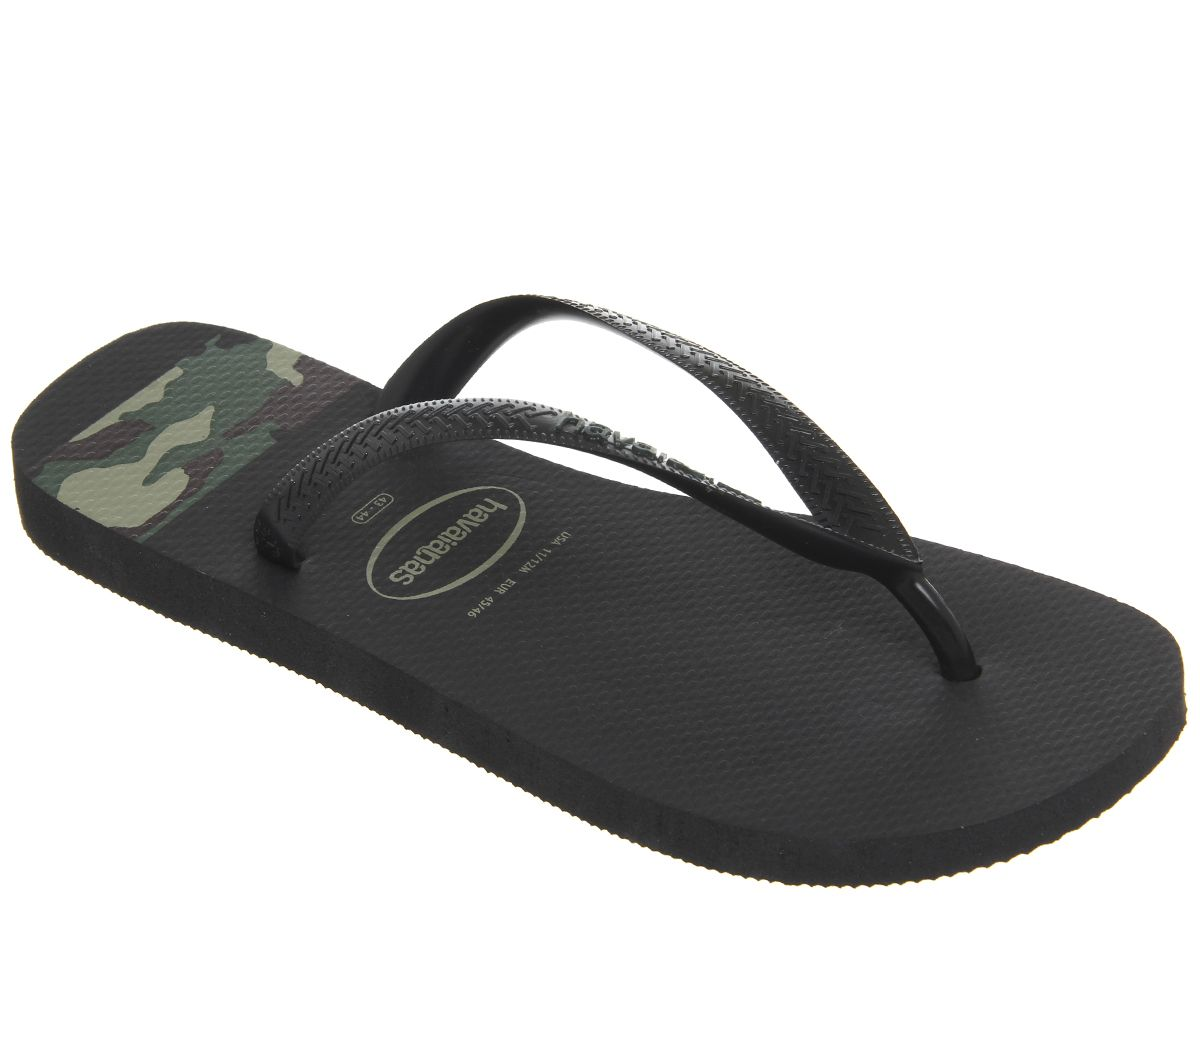 92bb04cb6 Havaianas Top Stripes Logo Black Camo - Sandals